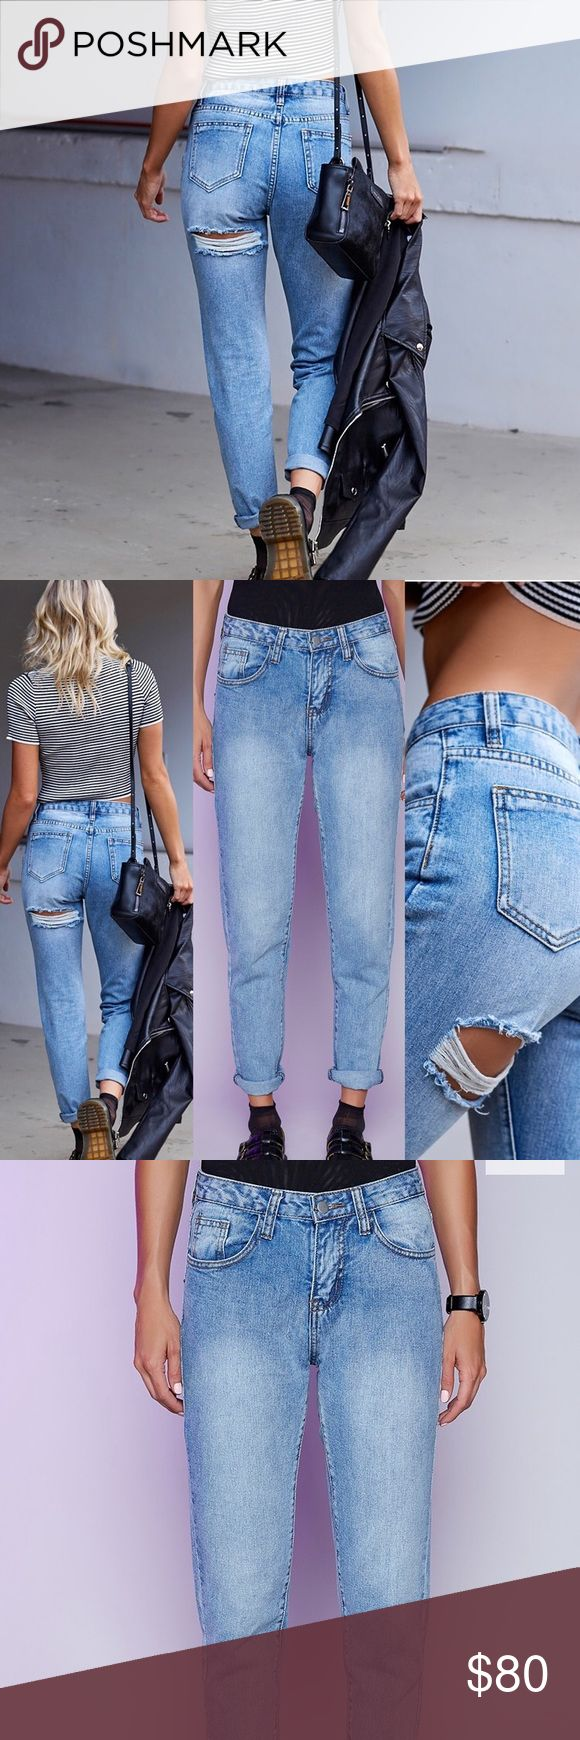 Australian Boutique Jeans - baby got back jeans Ships next day! Size M or 28 super chic light wash jeans, ordered from my favorite boutique Tobi, awesome fit and great fabric. Make an offer :) Tobi Jeans